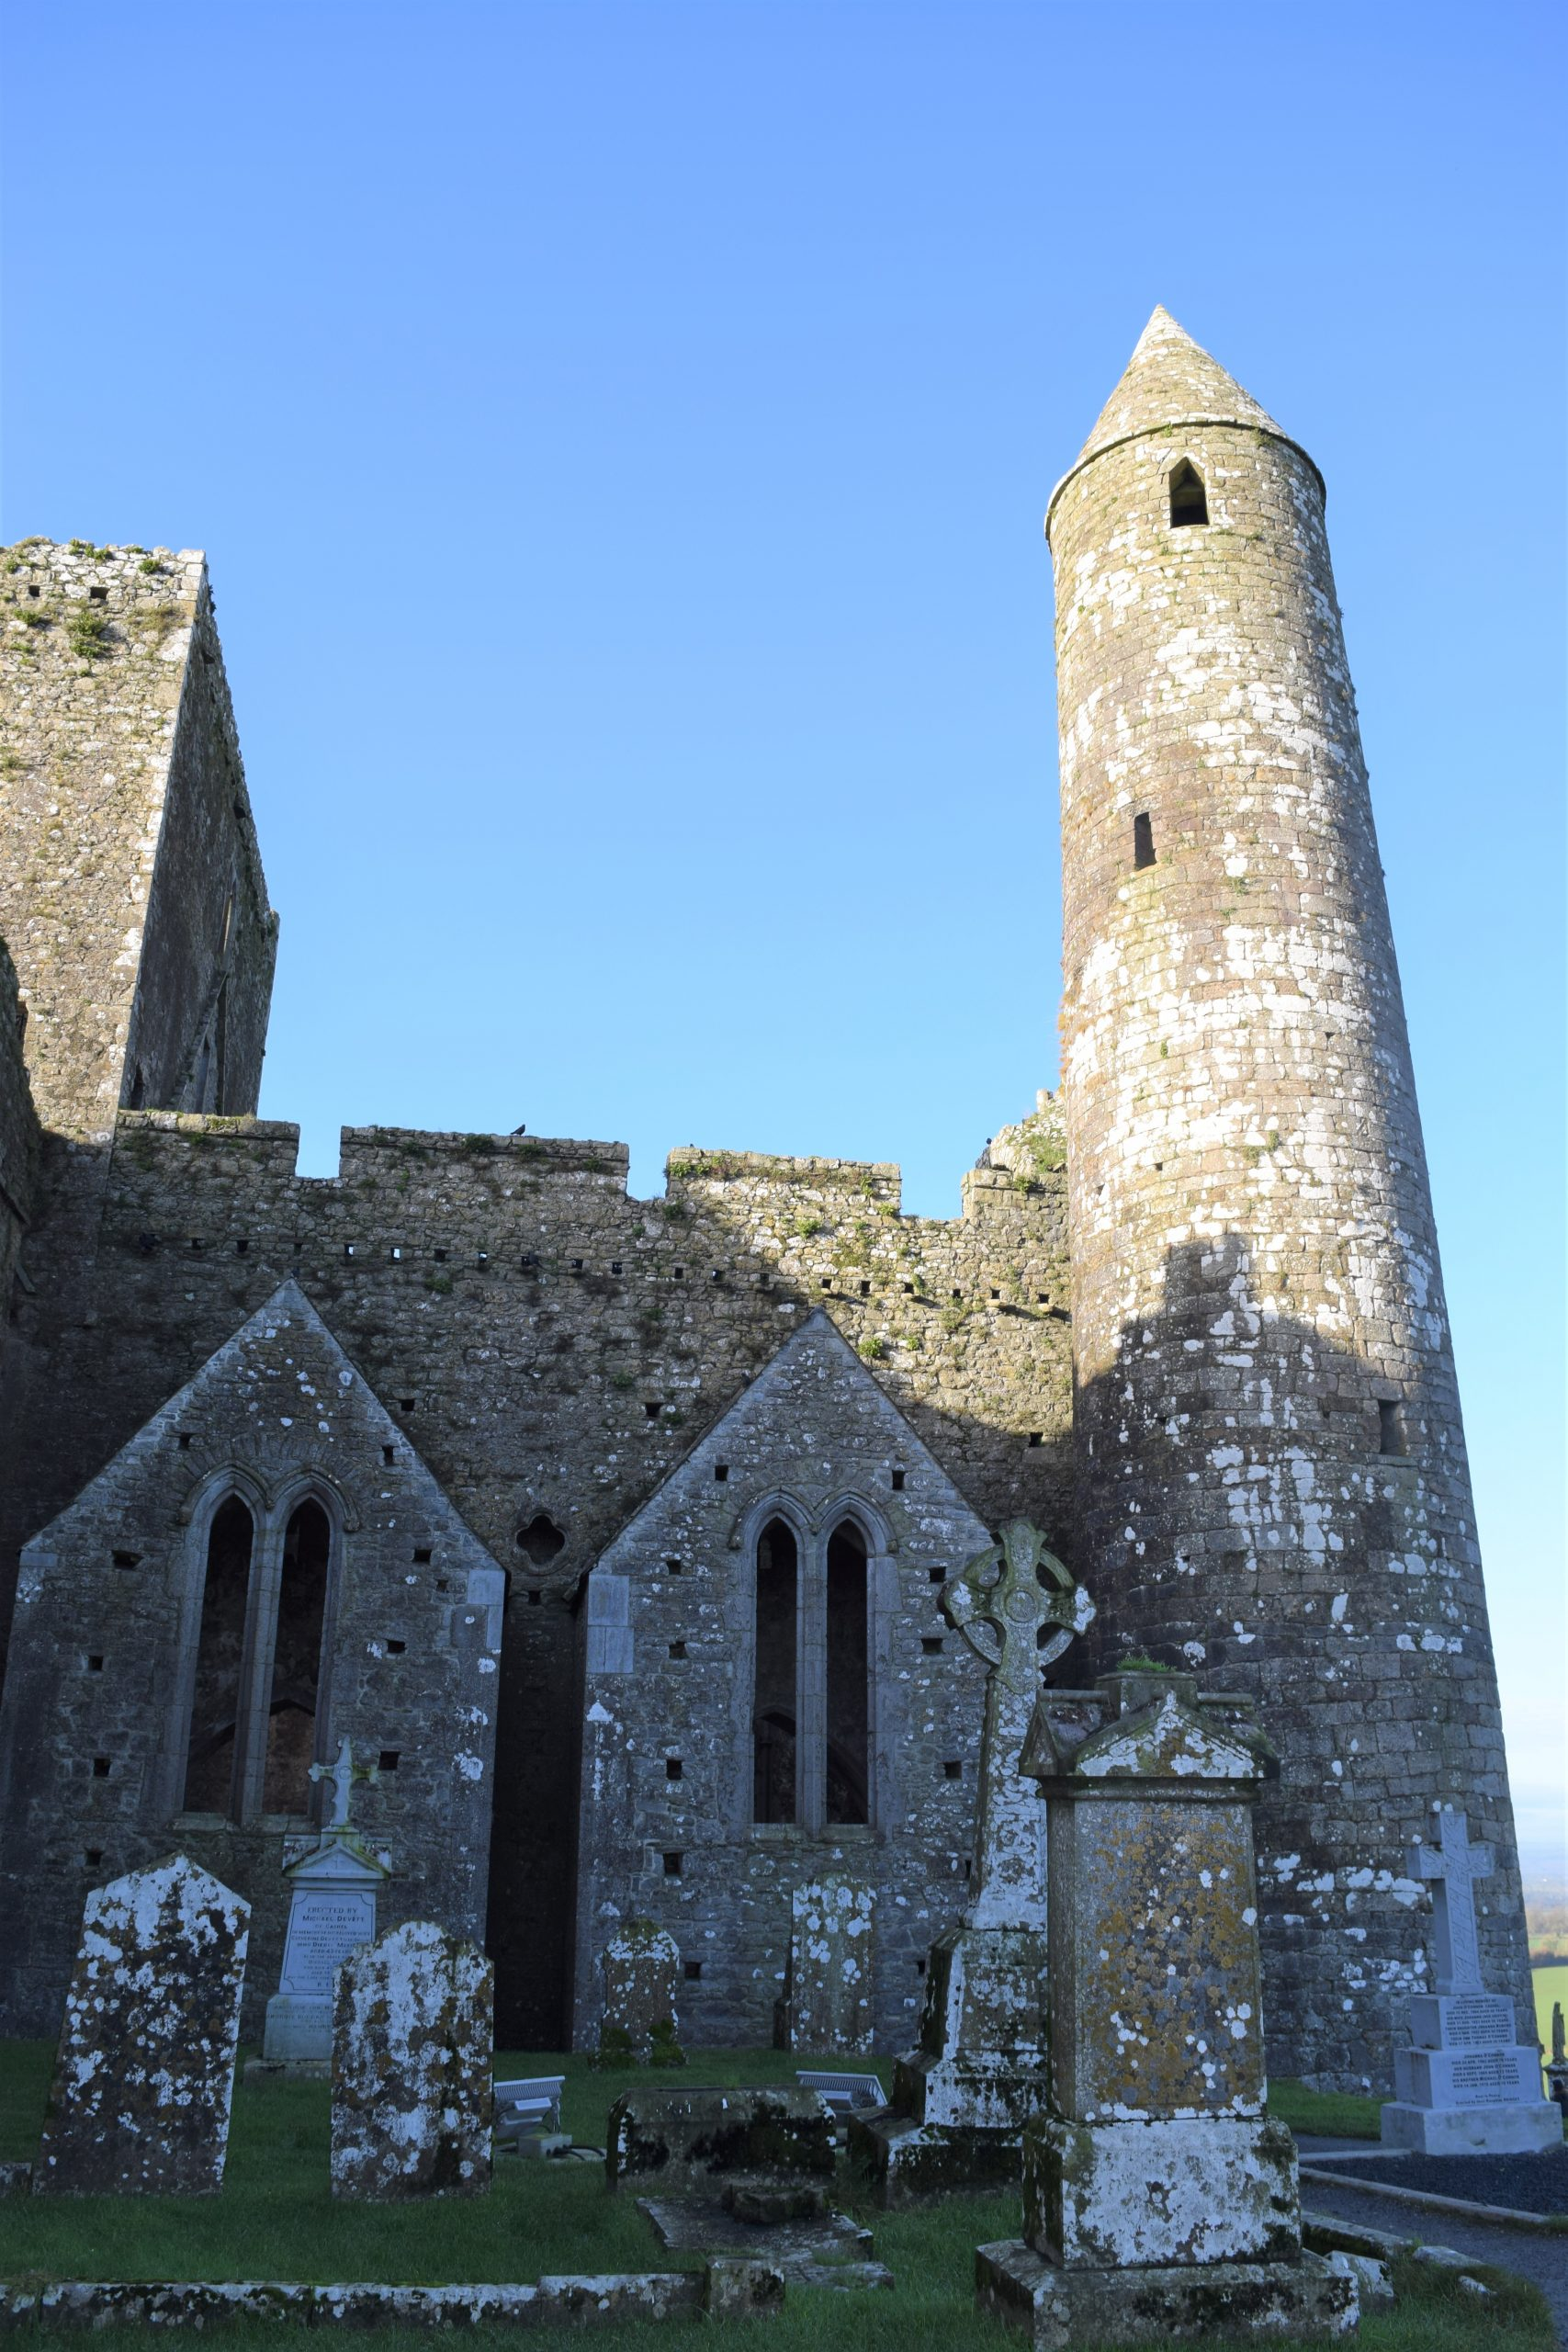 The Rock of Cashel in Ireland is historic and a must see, https://ouritalianjourney.com/rock-of-cashel-castle-ireland